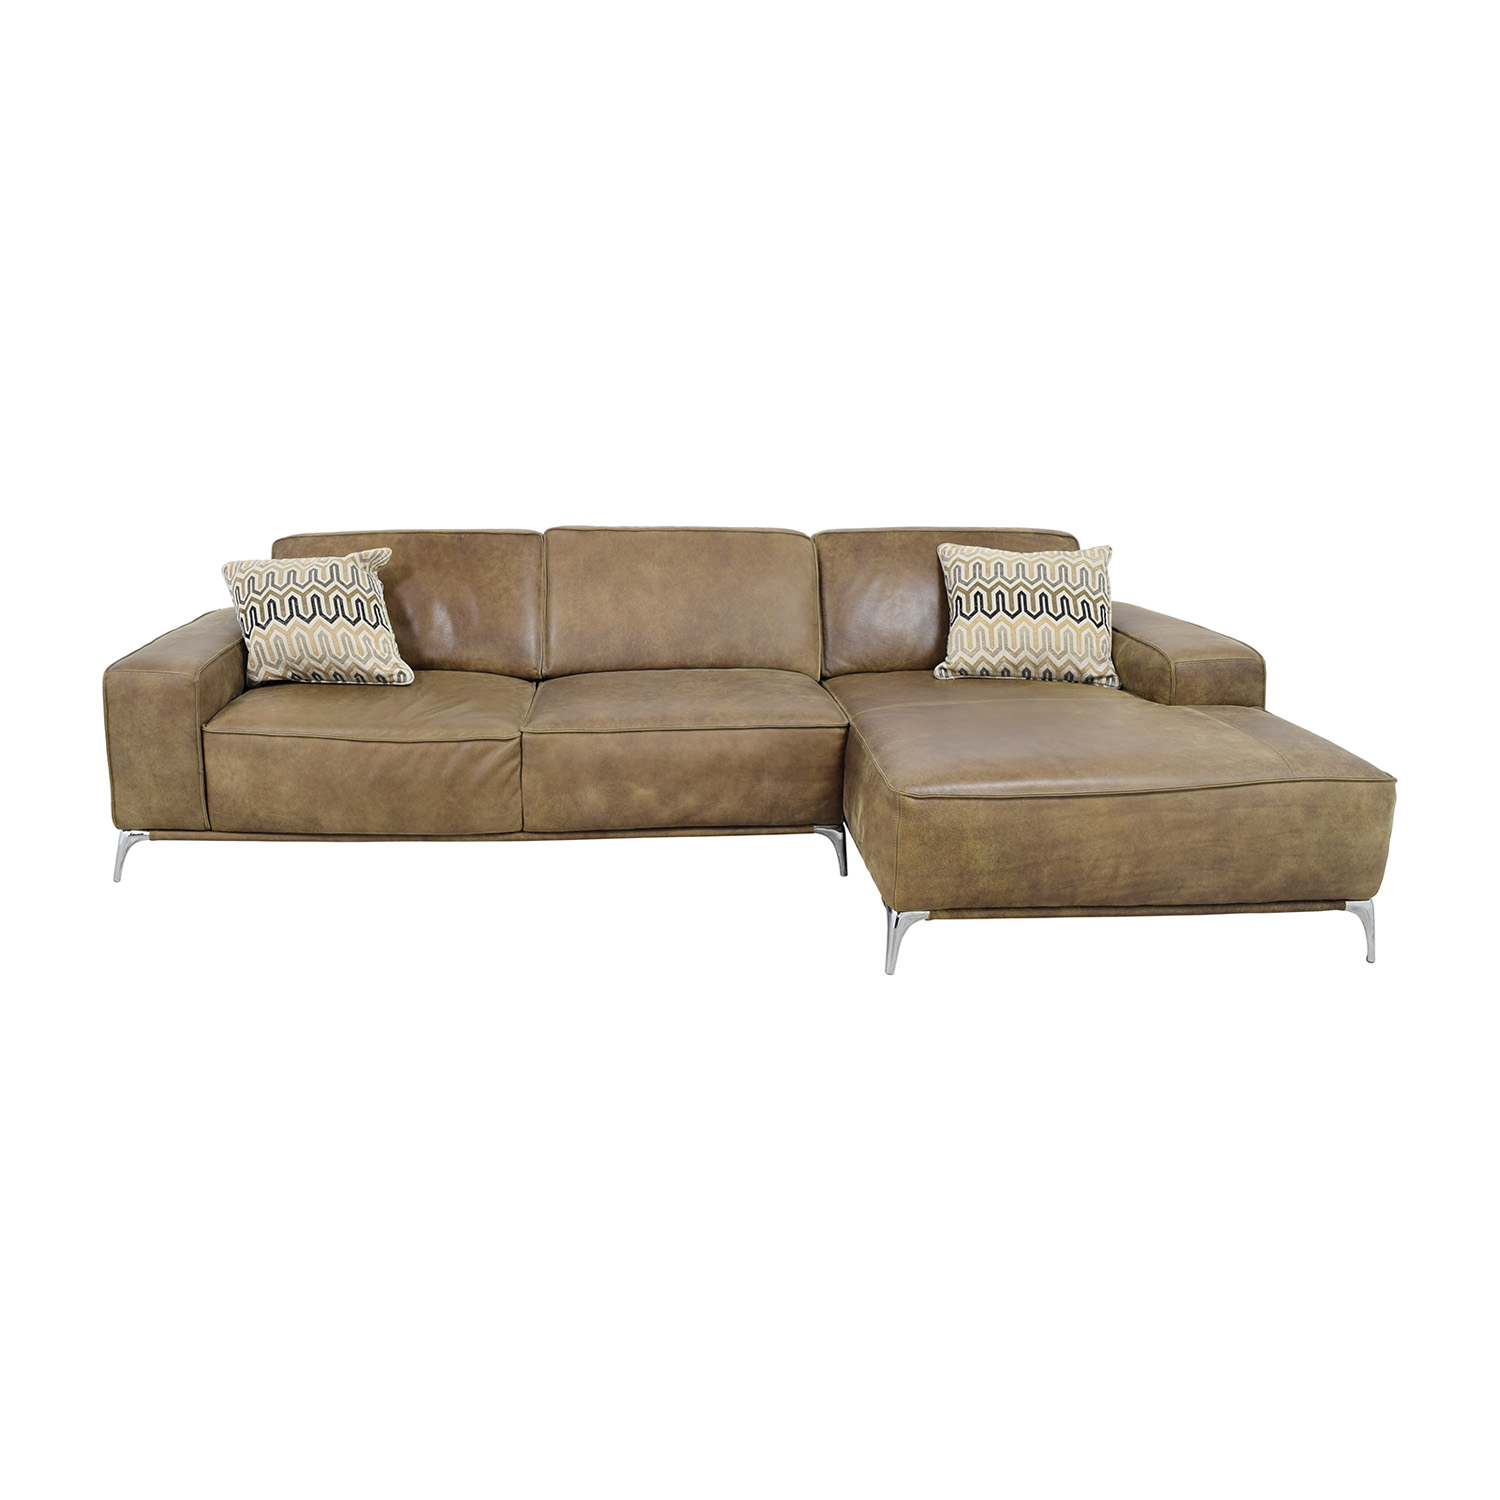 Astounding 75 Off Bloomingdales Giuseppe Nicolette Tan Leather Sectional Sofas Spiritservingveterans Wood Chair Design Ideas Spiritservingveteransorg